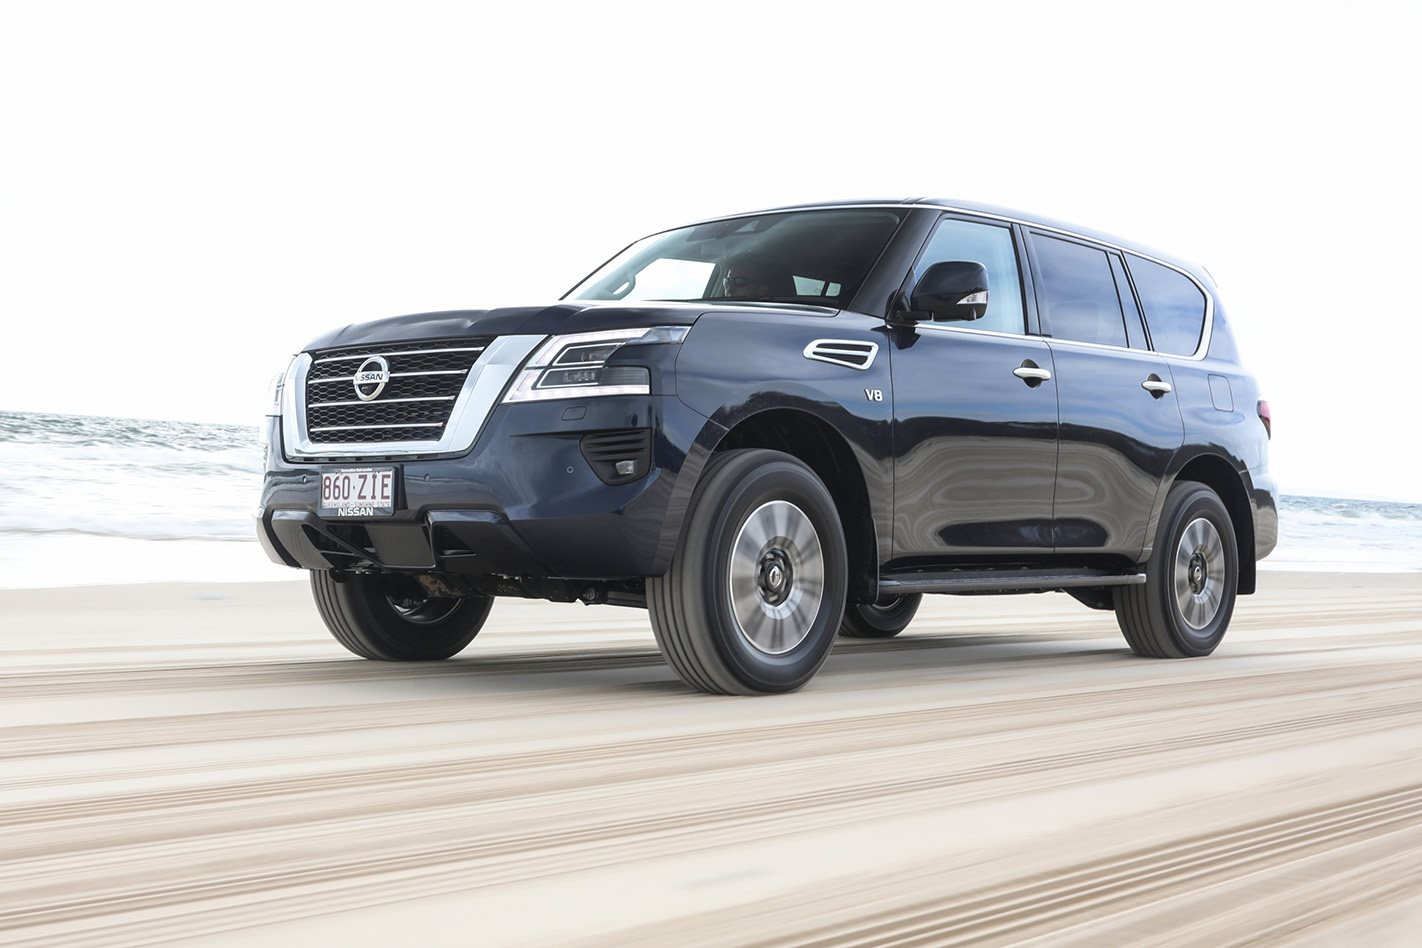 nissan patrol 2020 review, price & features